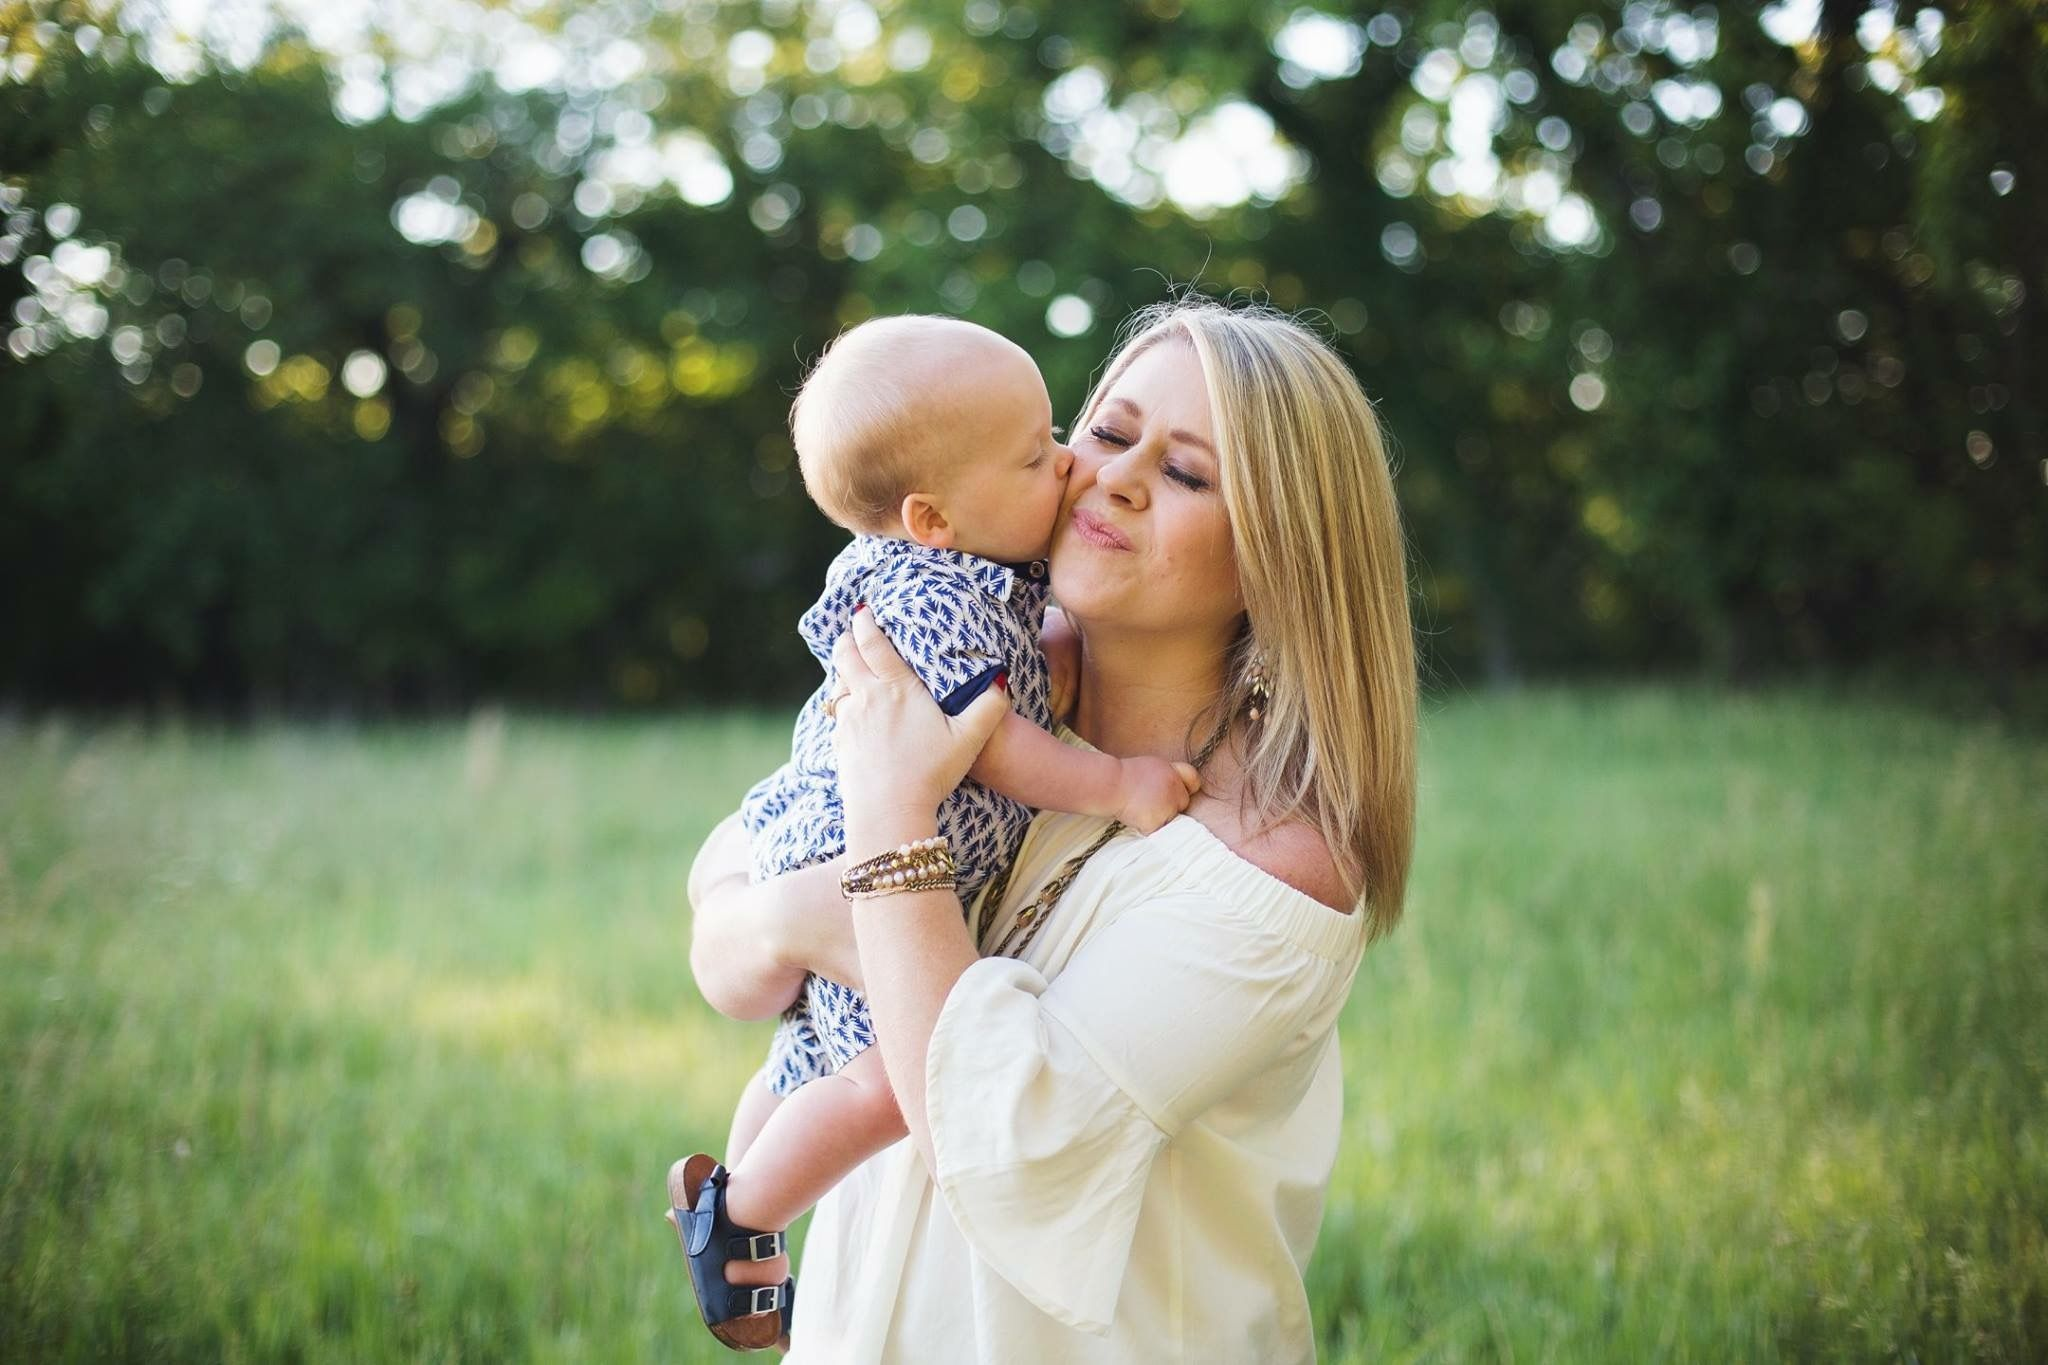 Mom And Son Kiss 1 Year Old Photo Shoot Photoshoot One Year